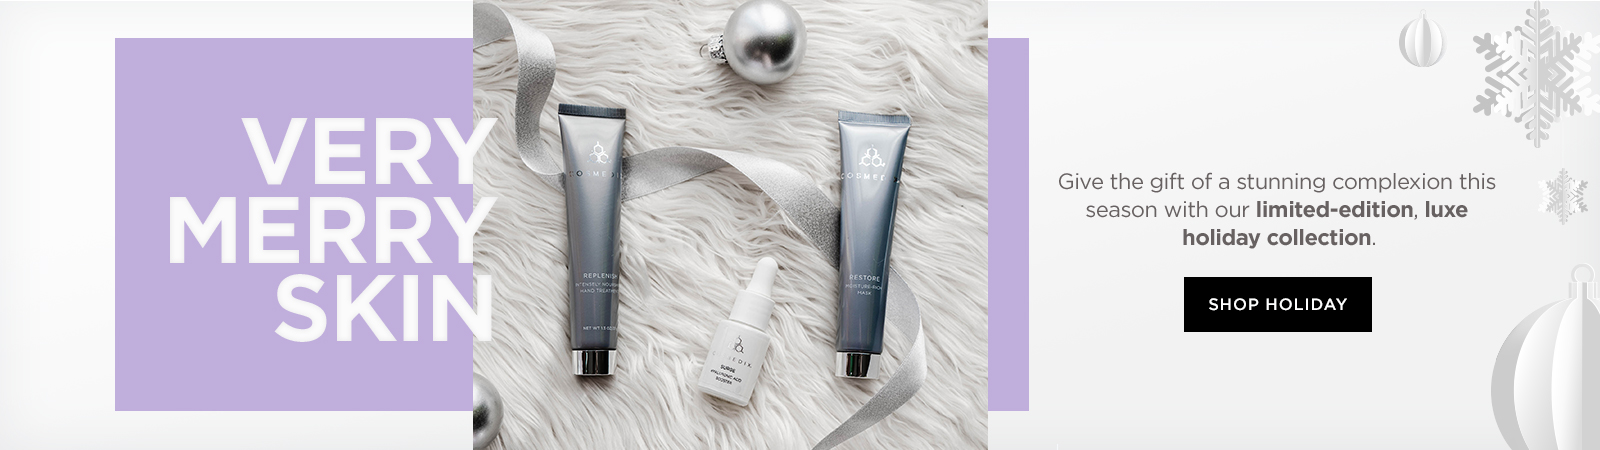 SHOP HOLIDAY SKIN CARE